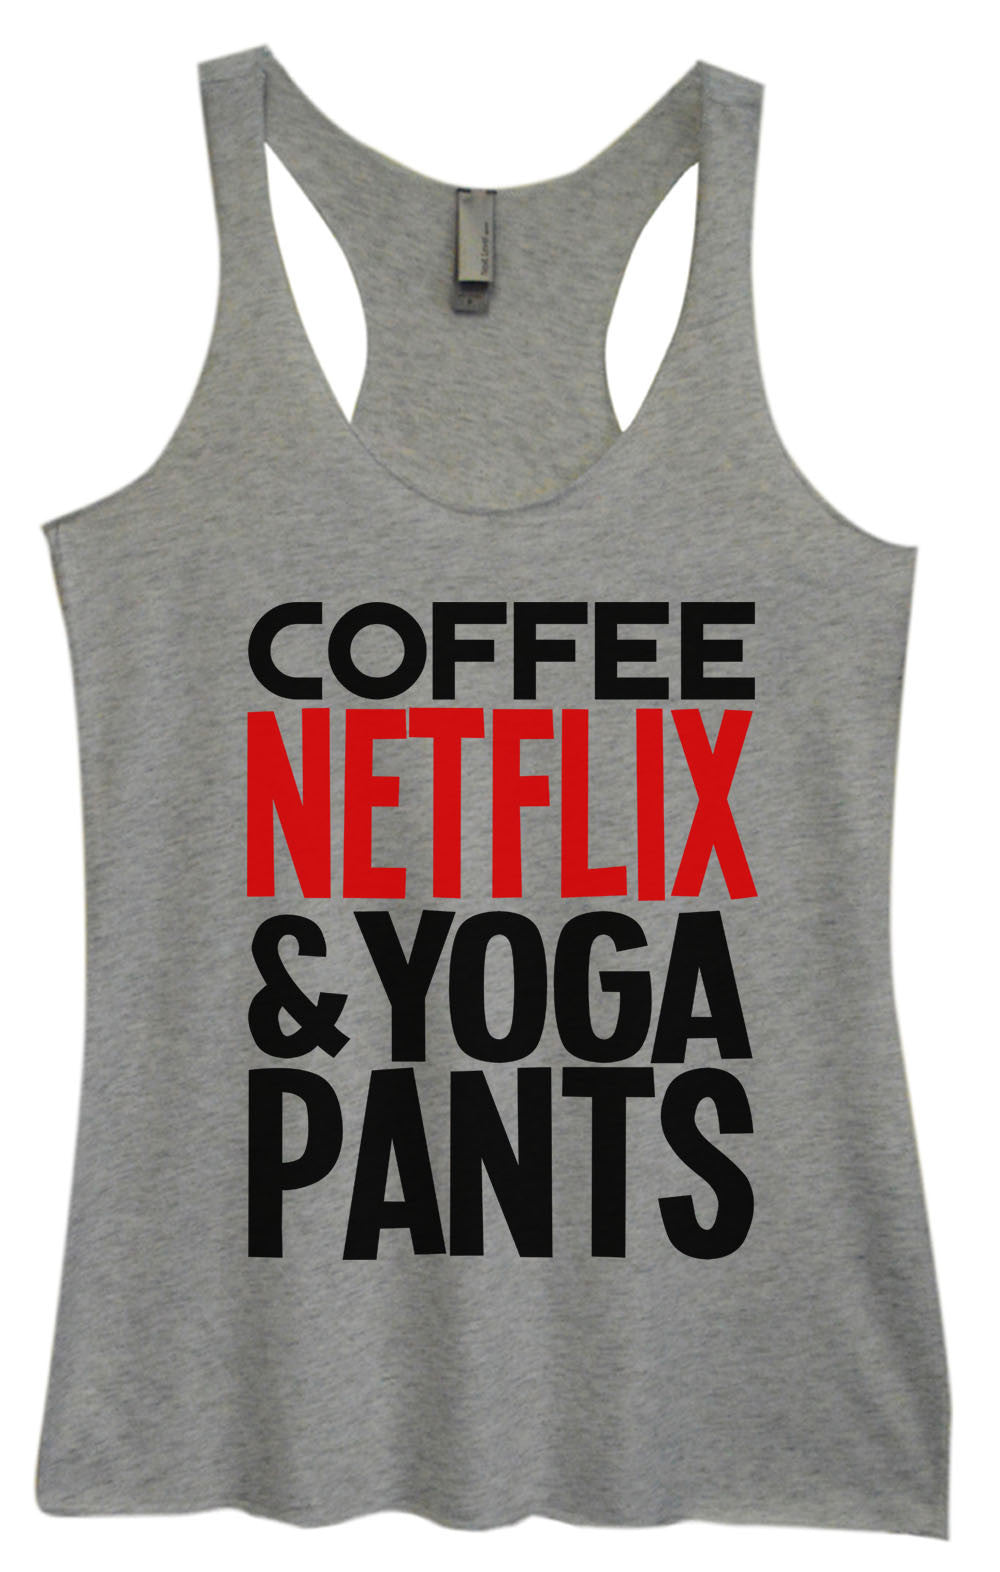 Womens Fashion Triblend Tank Top - Coffee Netflix & Yoga Pants - Tri-995 - Funny Shirts Tank Tops Burnouts and Triblends  - 2